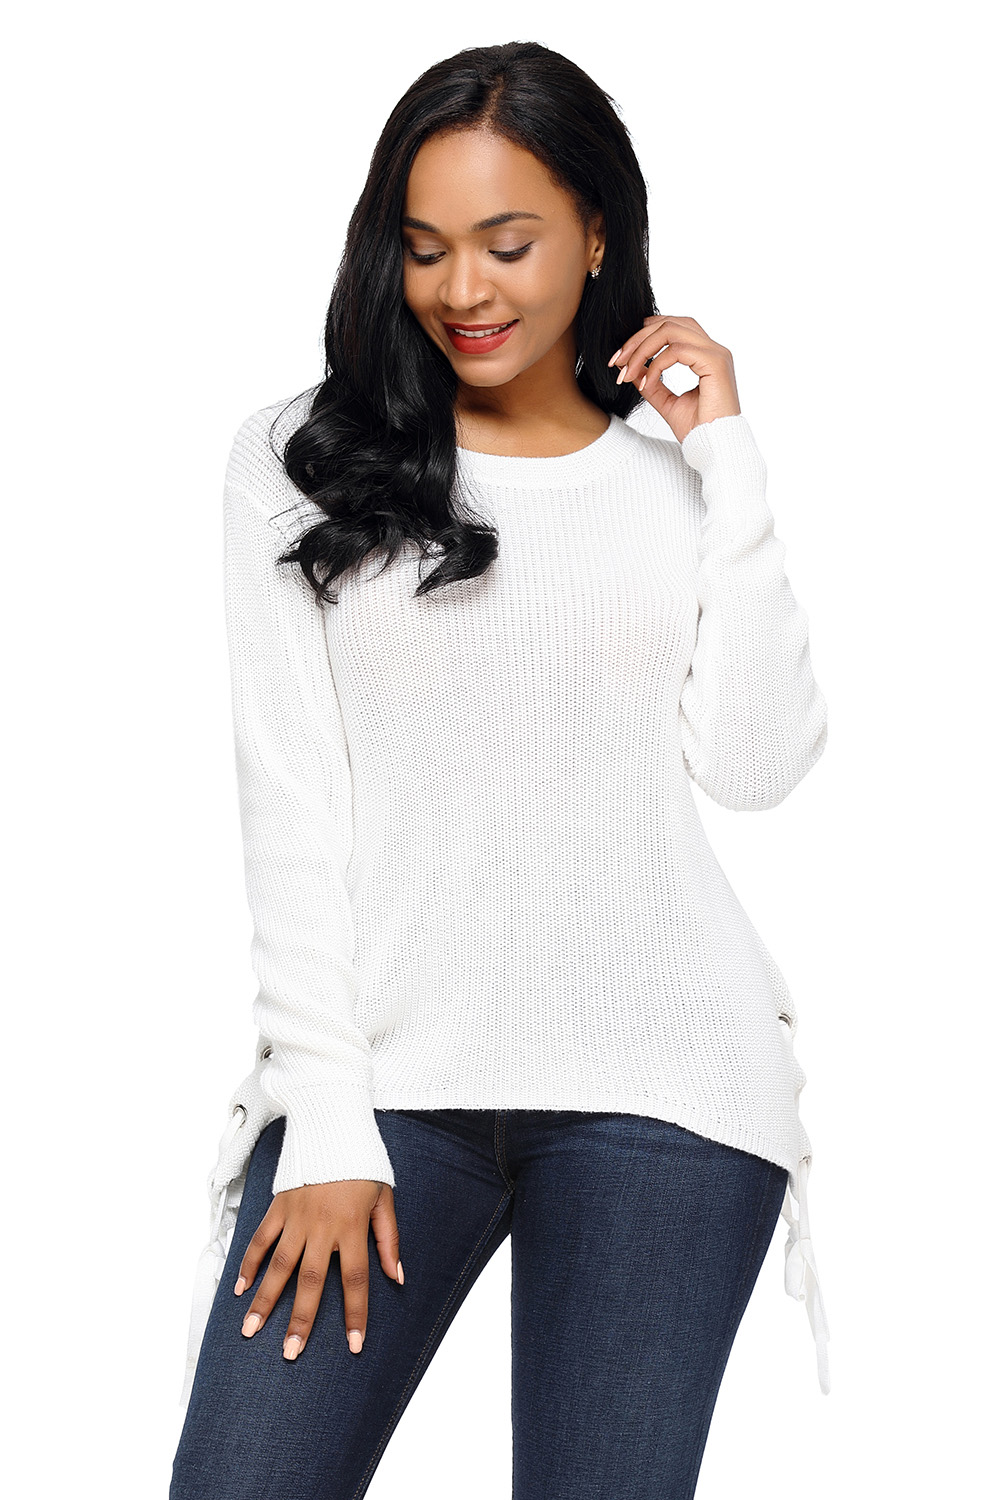 a80042d840da86 White long sleeve lace up sided sweater womens strappy spaghetti ...